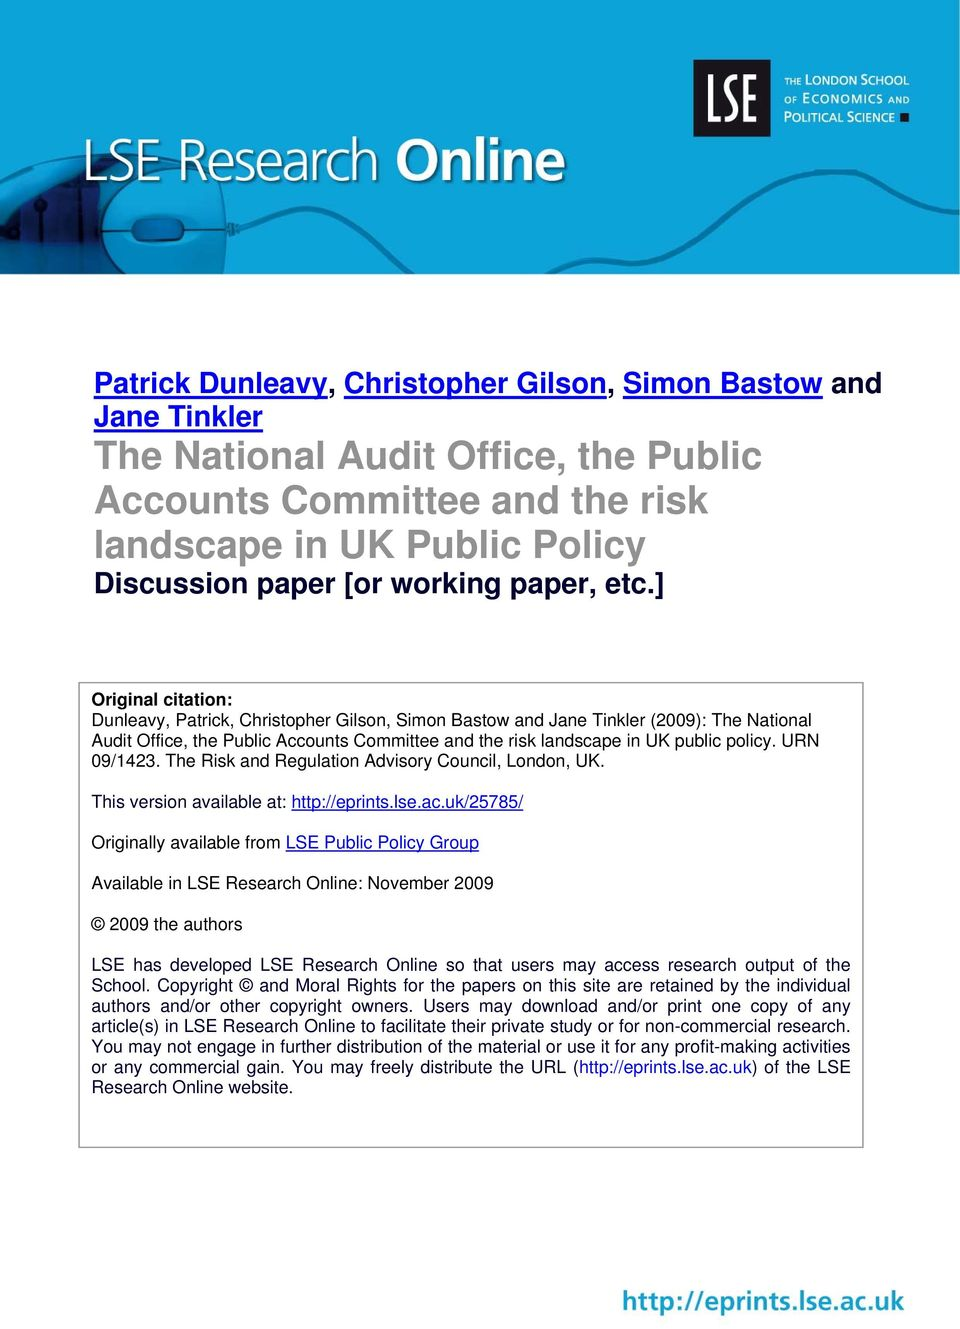 ] Original citation: Dunleavy, Patrick, Christopher Gilson, Simon Bastow and Jane Tinkler (2009): The National Audit Office, the Public Accounts Committee and the risk landscape in UK public policy.